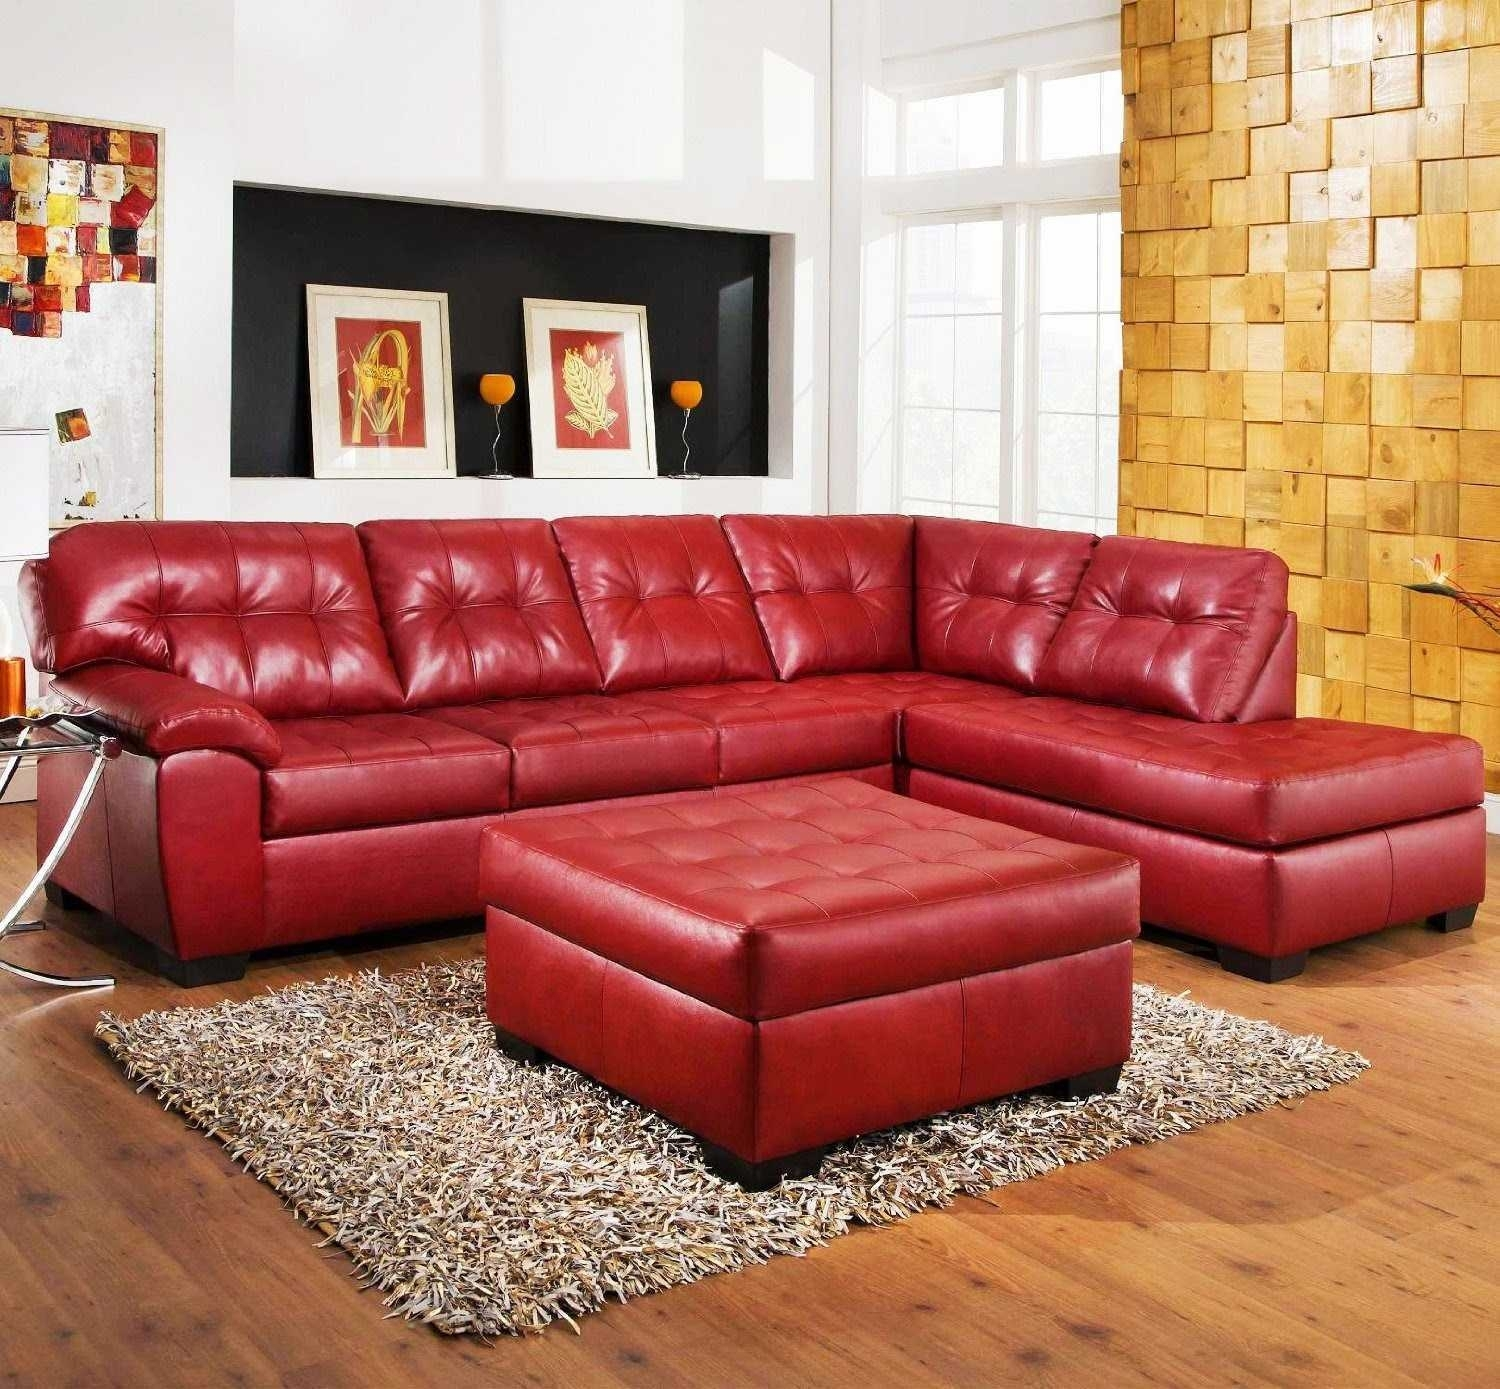 The Best Sectional Sofas Rooms Go And Ideas Pics Of To Trend Popular In Rooms To Go Sectional Sofas (Image 9 of 10)